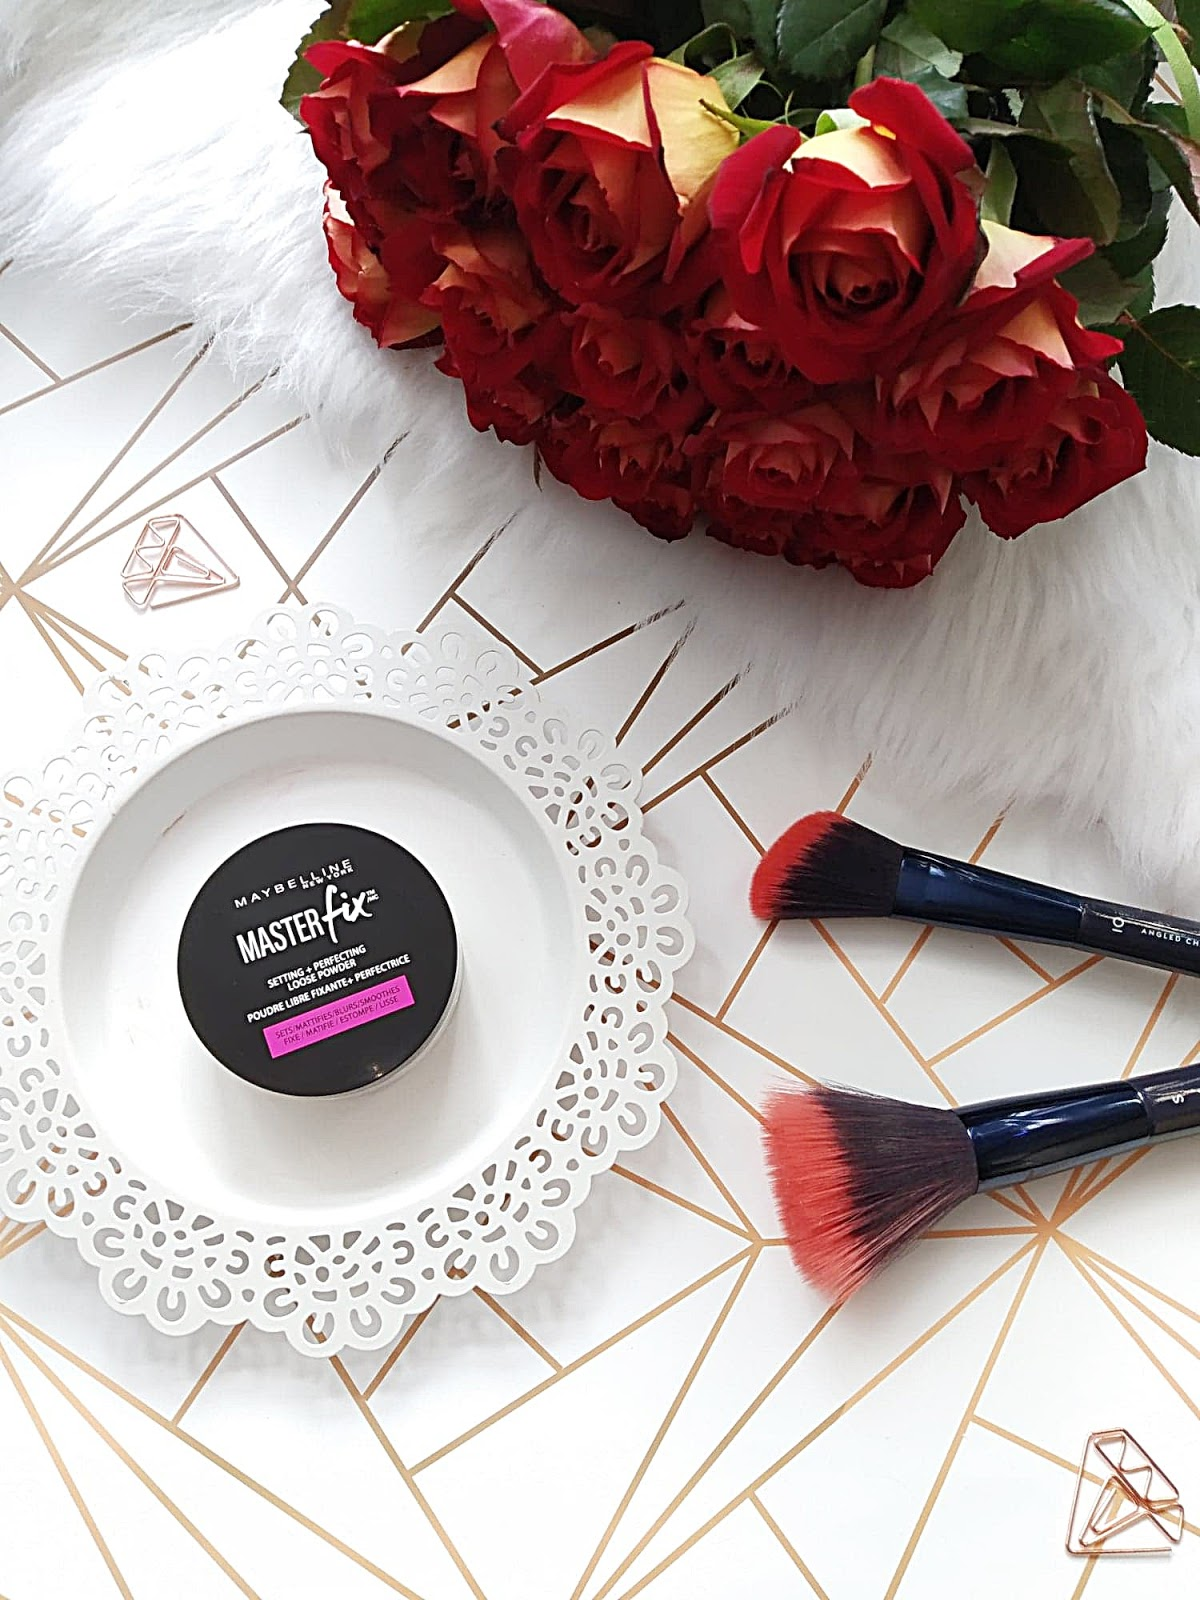 Maybelline, Master Fix , Setting + Perfecting Loose Powder